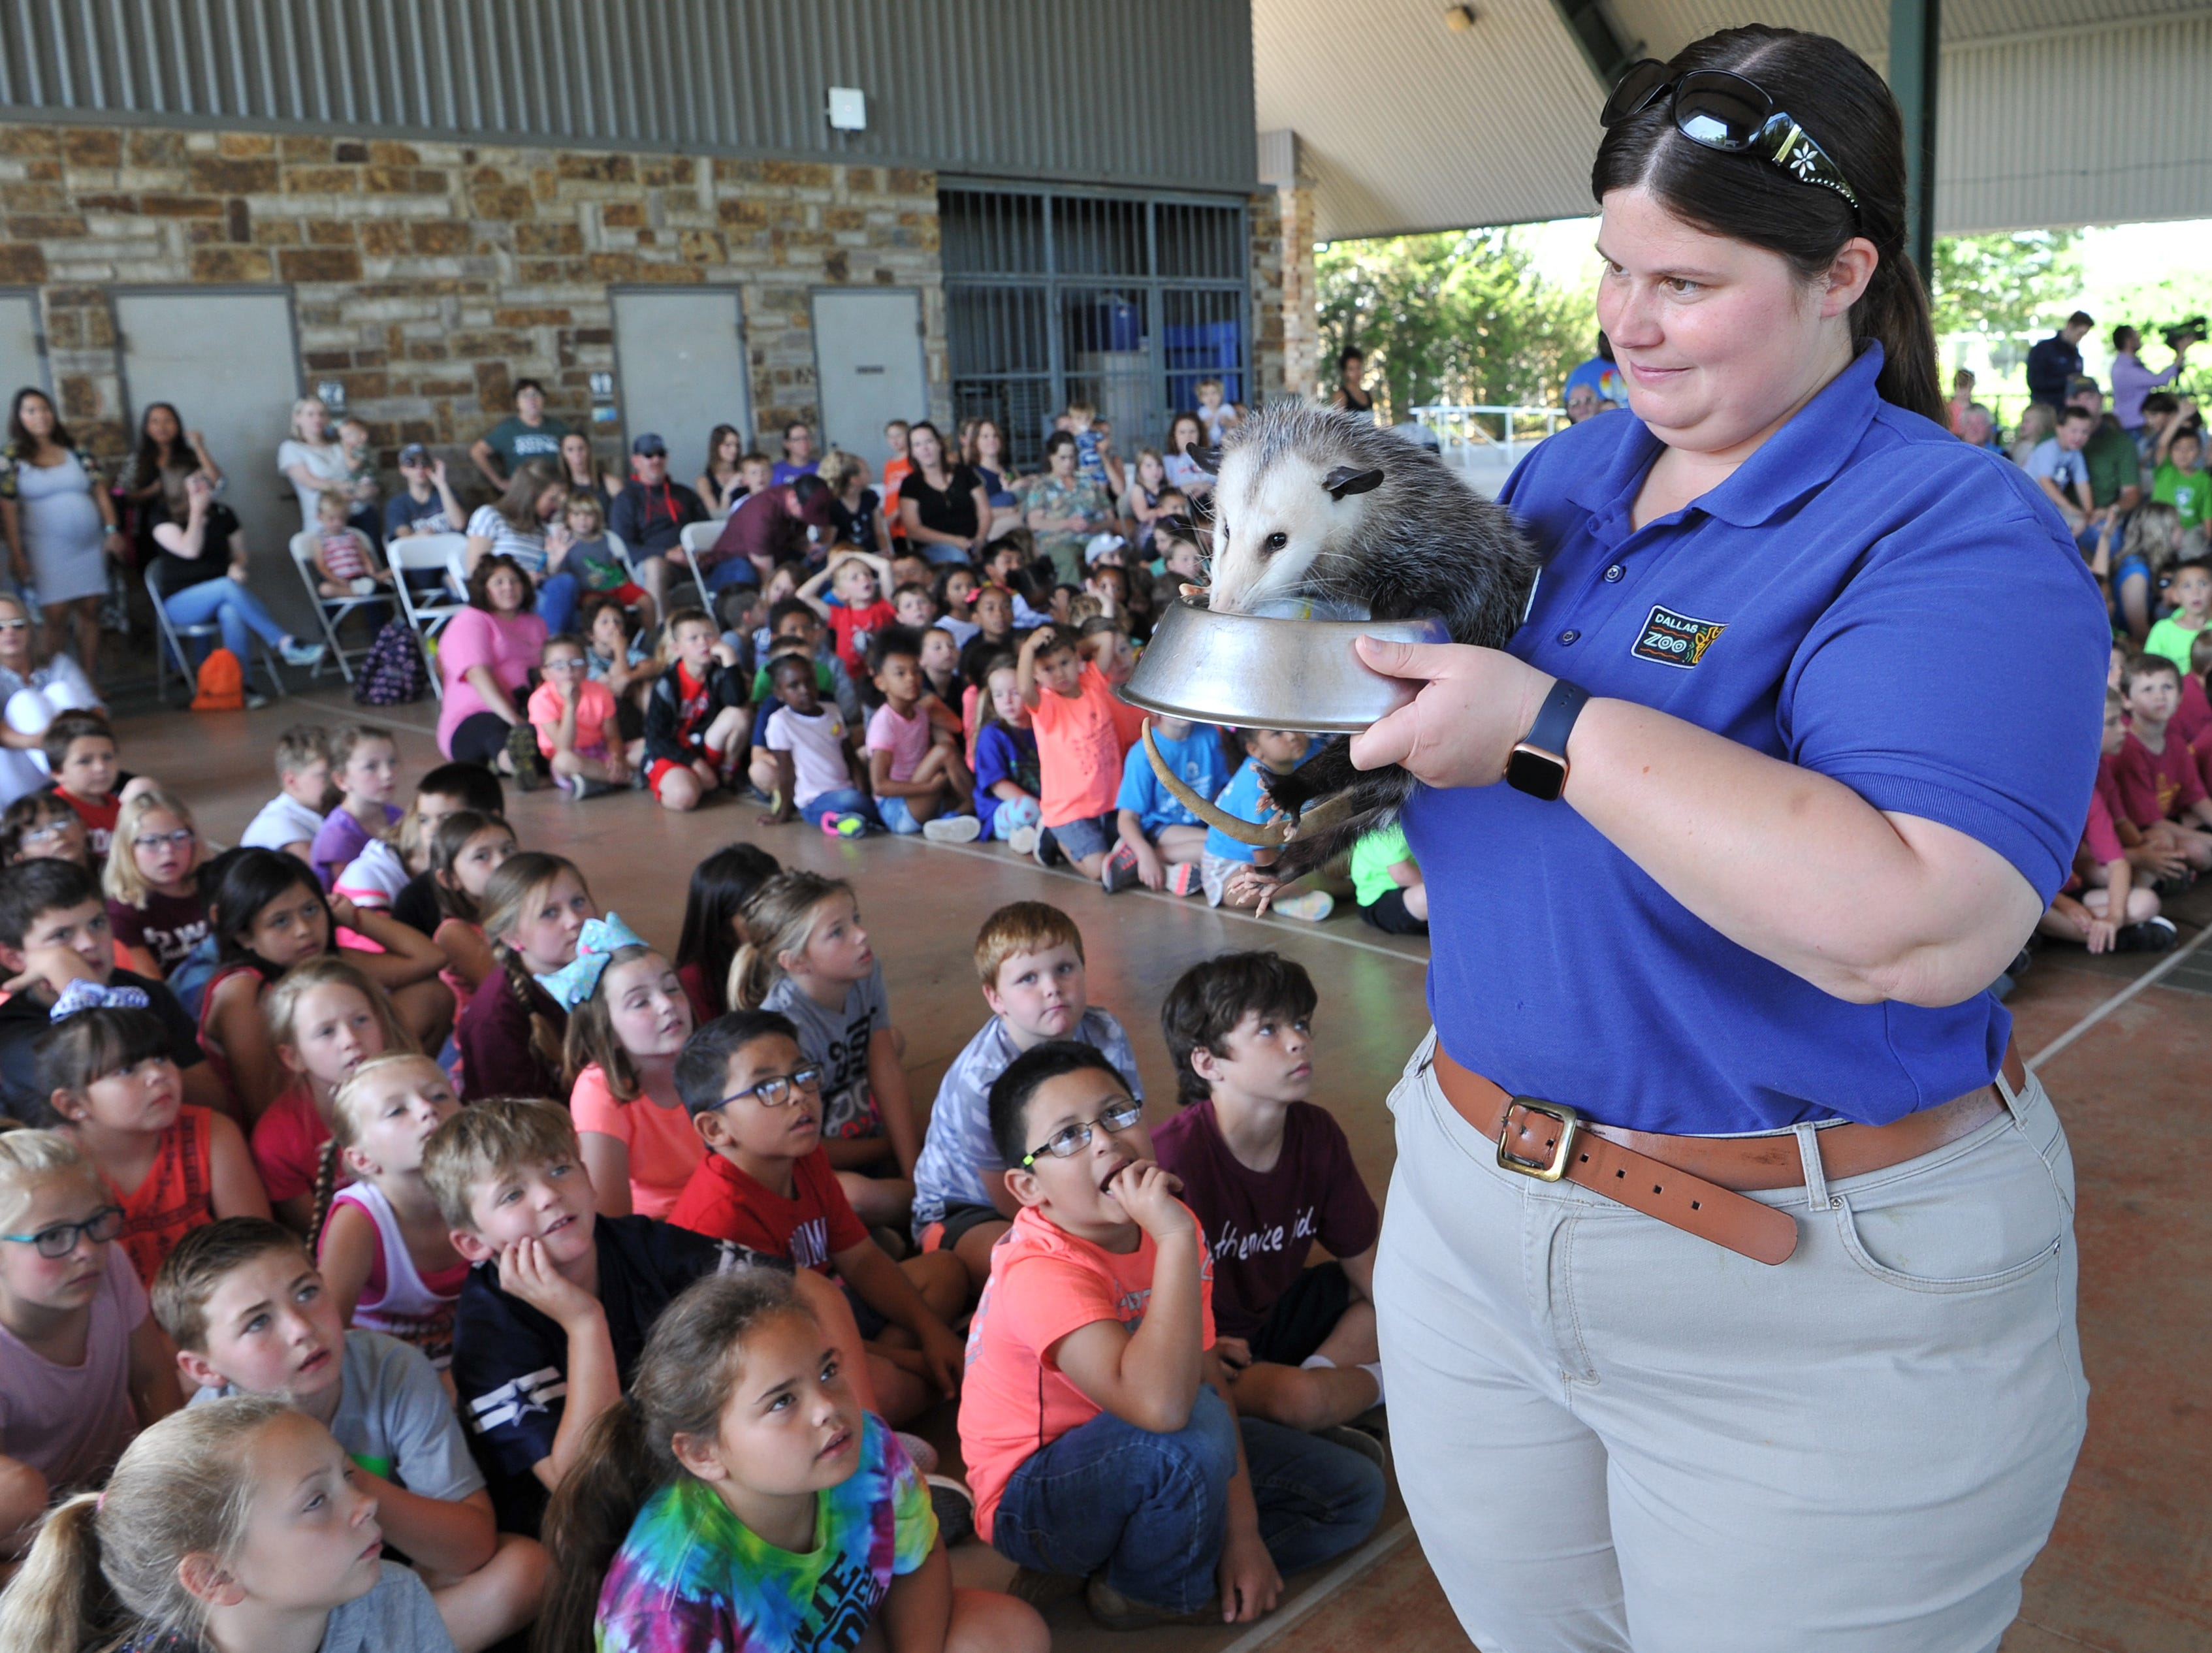 Dallas Zoo outreach specialist manager, Allyssa Leslie shows Emory the Opossum during the zoo's annual trip to the Wichita Falls River Bend Nature Center, Tuesday morning.